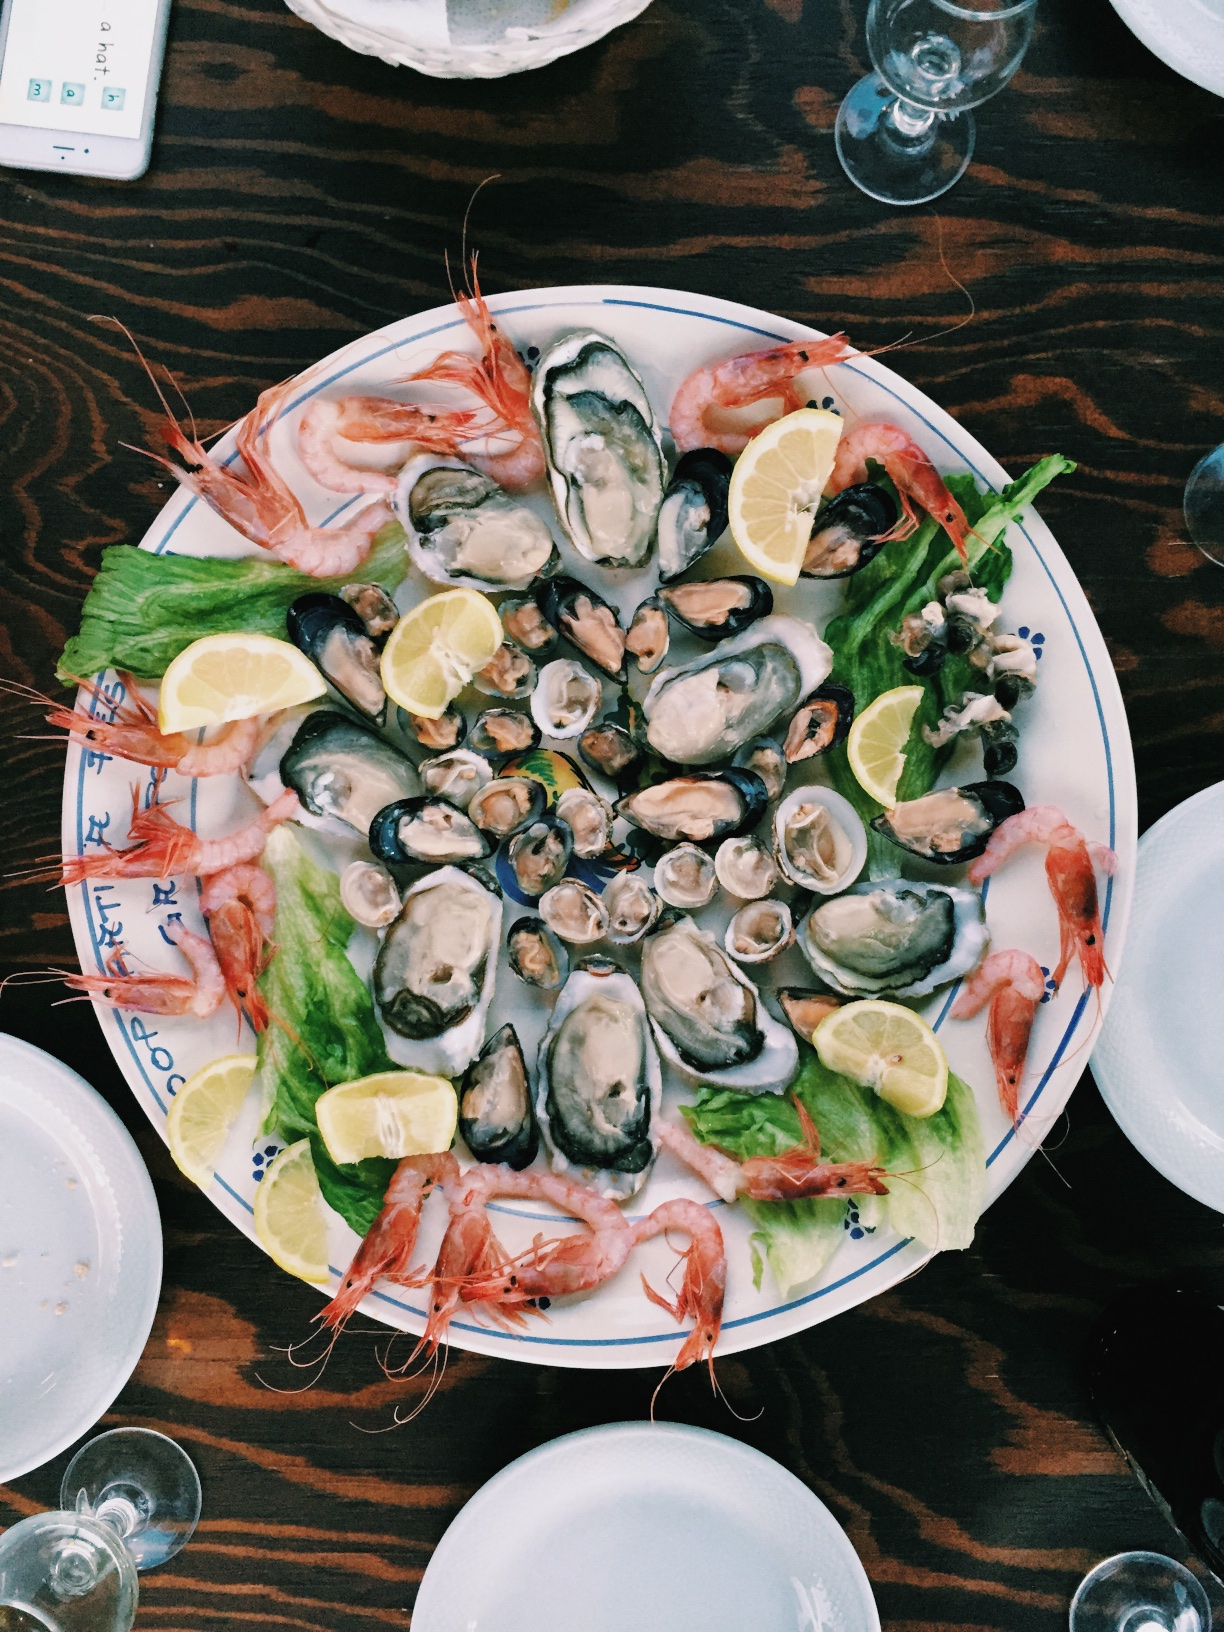 The freshest raw oysters, clams, snails, shrimp, shucked and peeled while you sip cold bubbly.